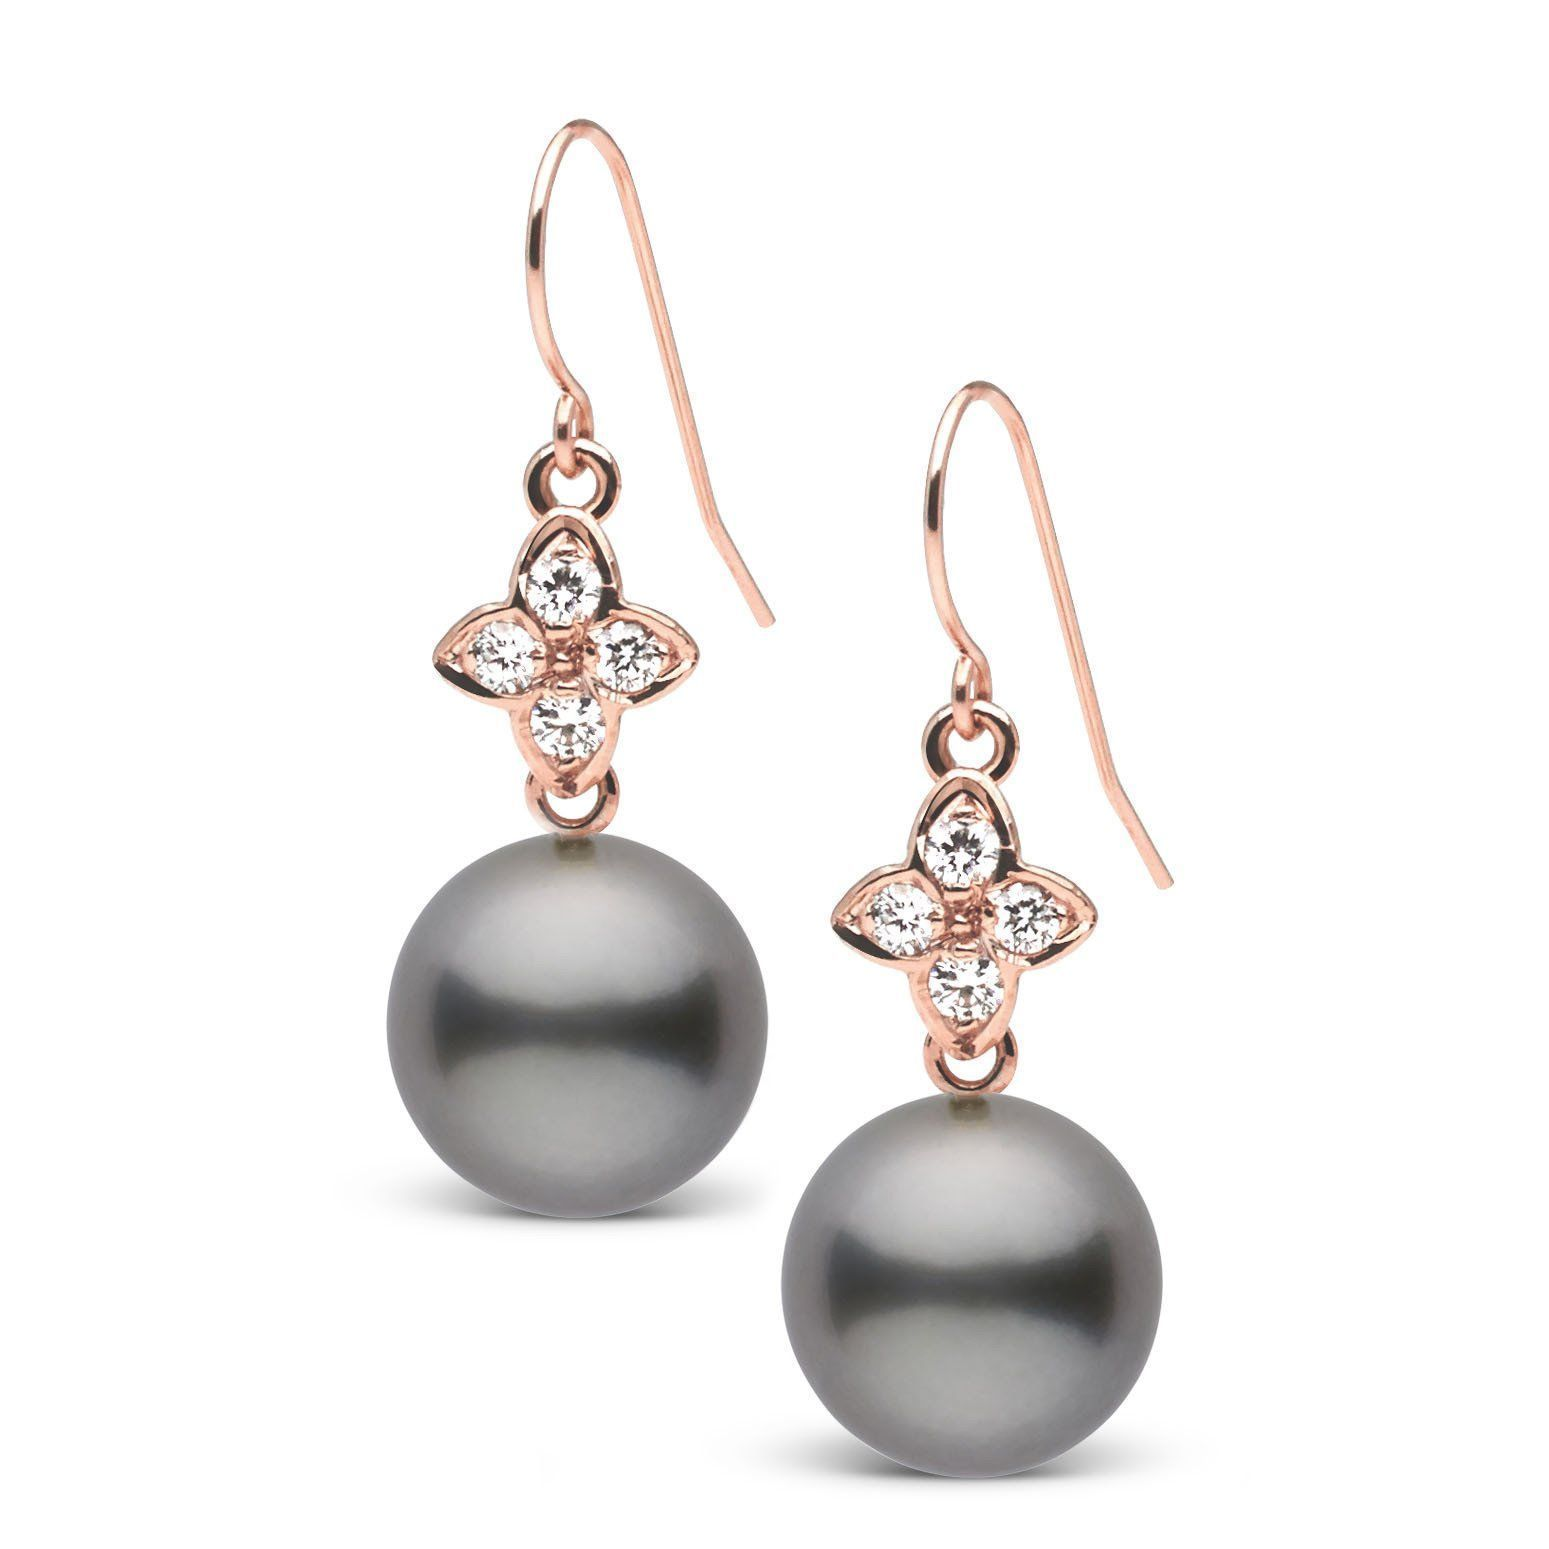 Violet Collection Tahitian 9.0-10.0 mm Pearl and Diamond Earrings